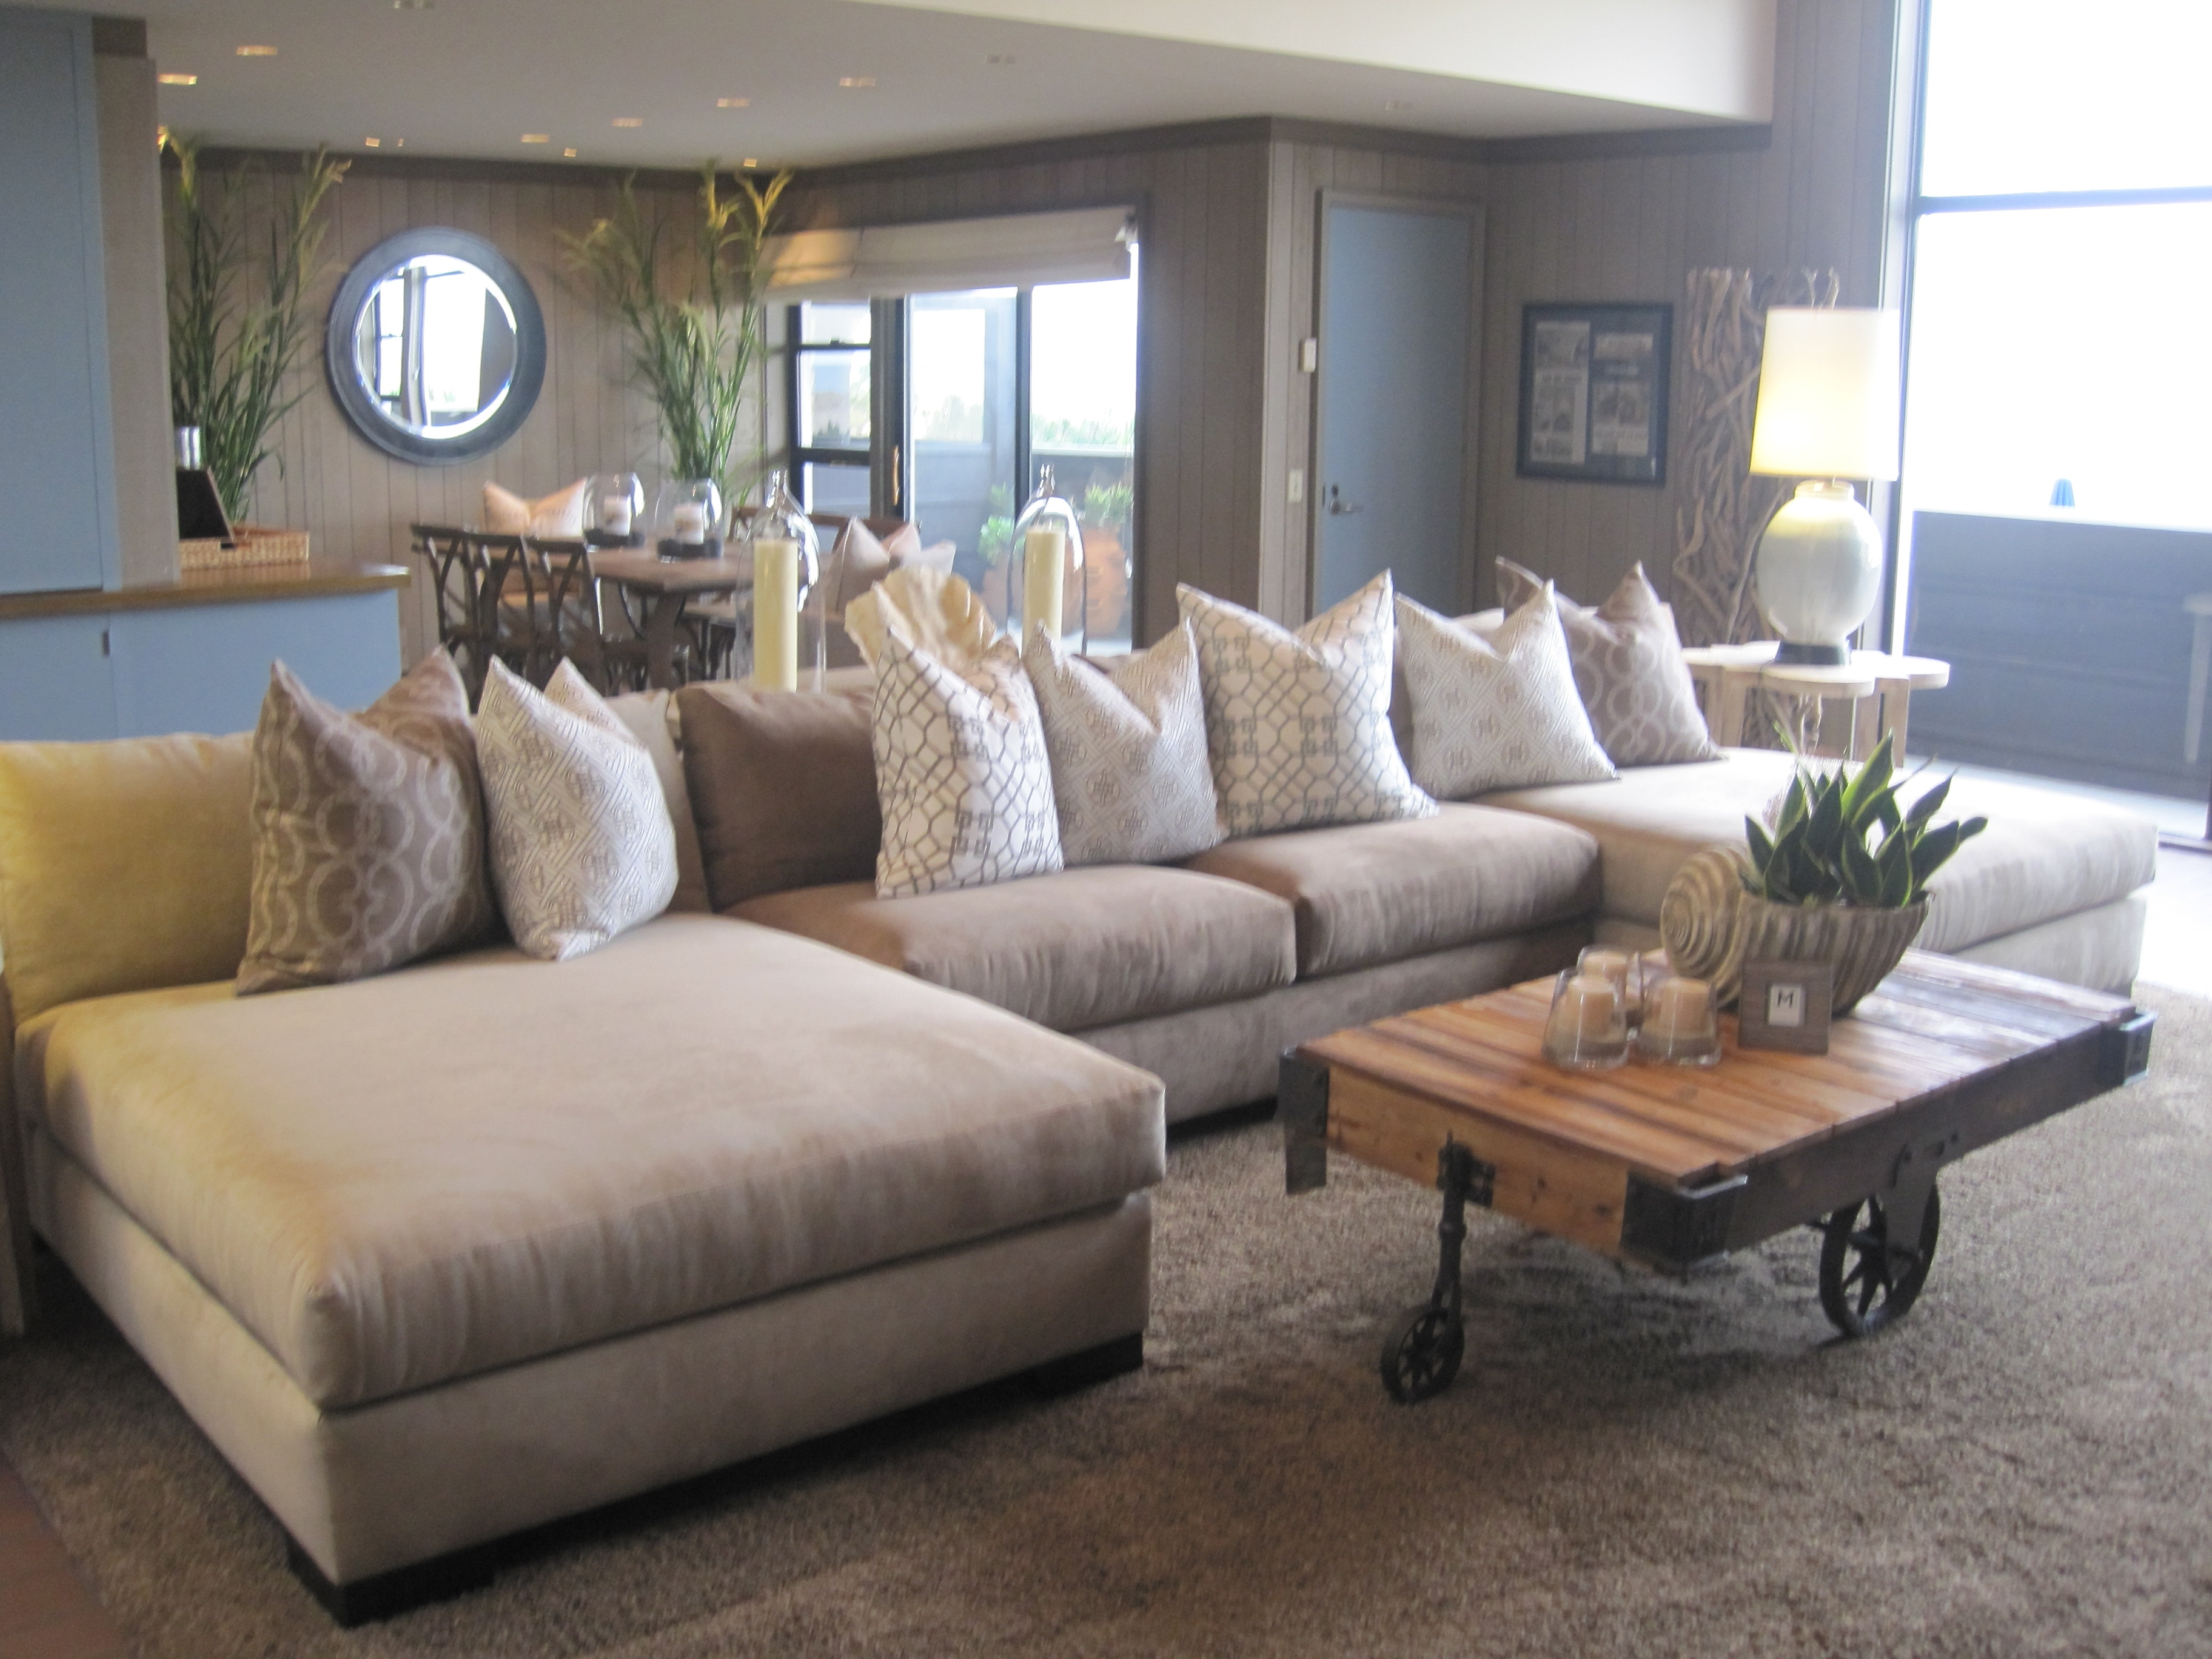 Oversized Sectional Sofas In 2017 Chaise Lounges Double Sectional Sofa With Oversized Ottoman Ideas (View 4 of 15)